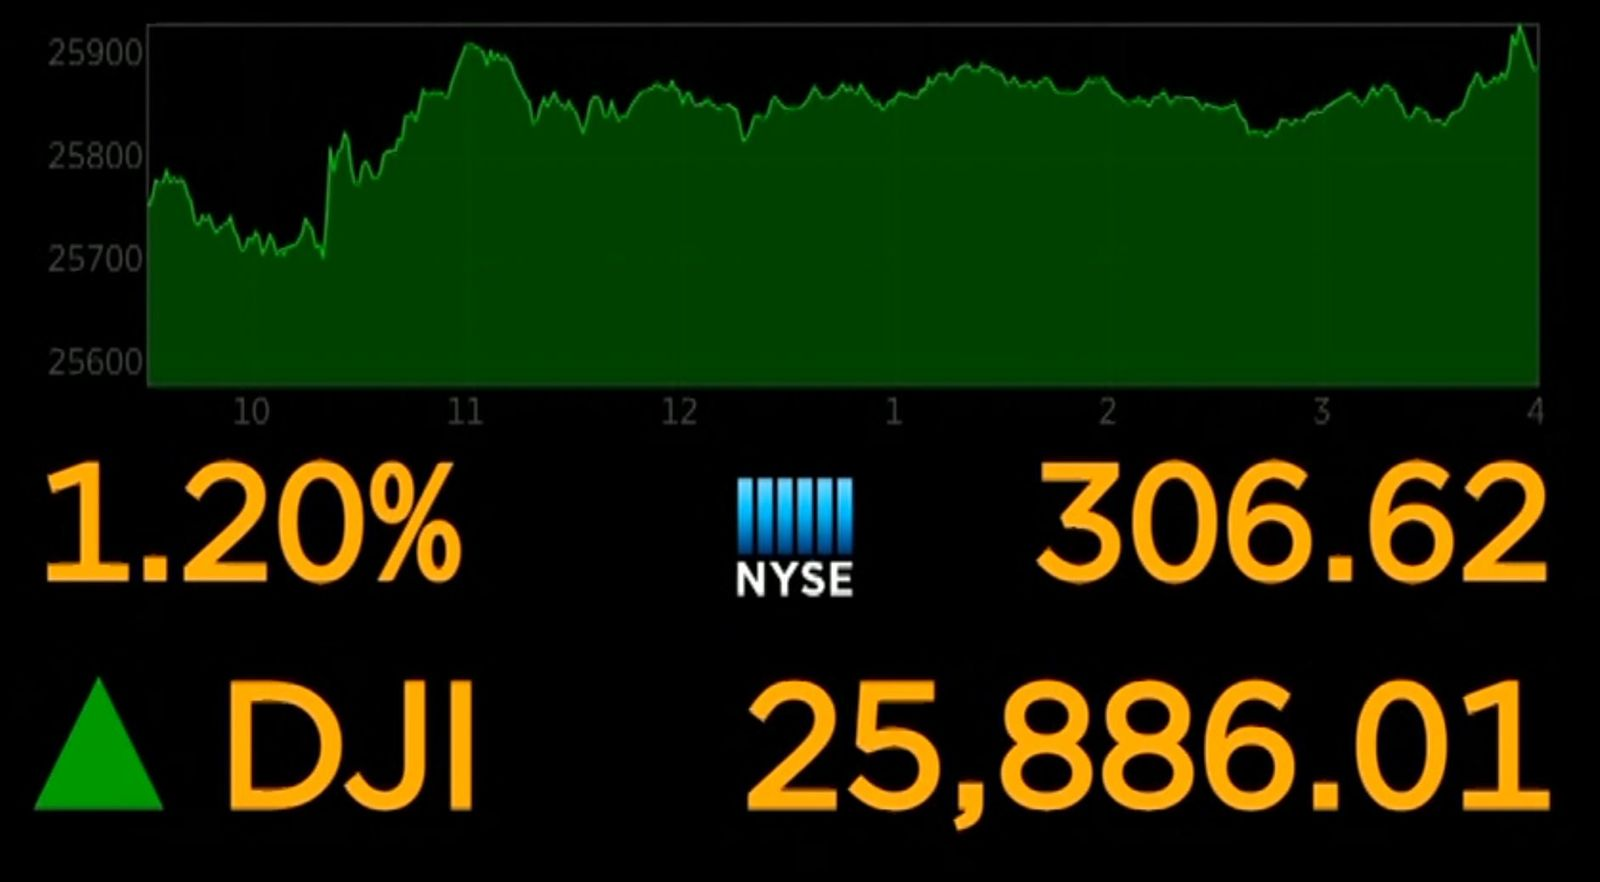 U.S. stocks were poised for solid gains at the open too with Dow futures and the broader S&P 500 futures up 0.9%. (Photo NYSE)